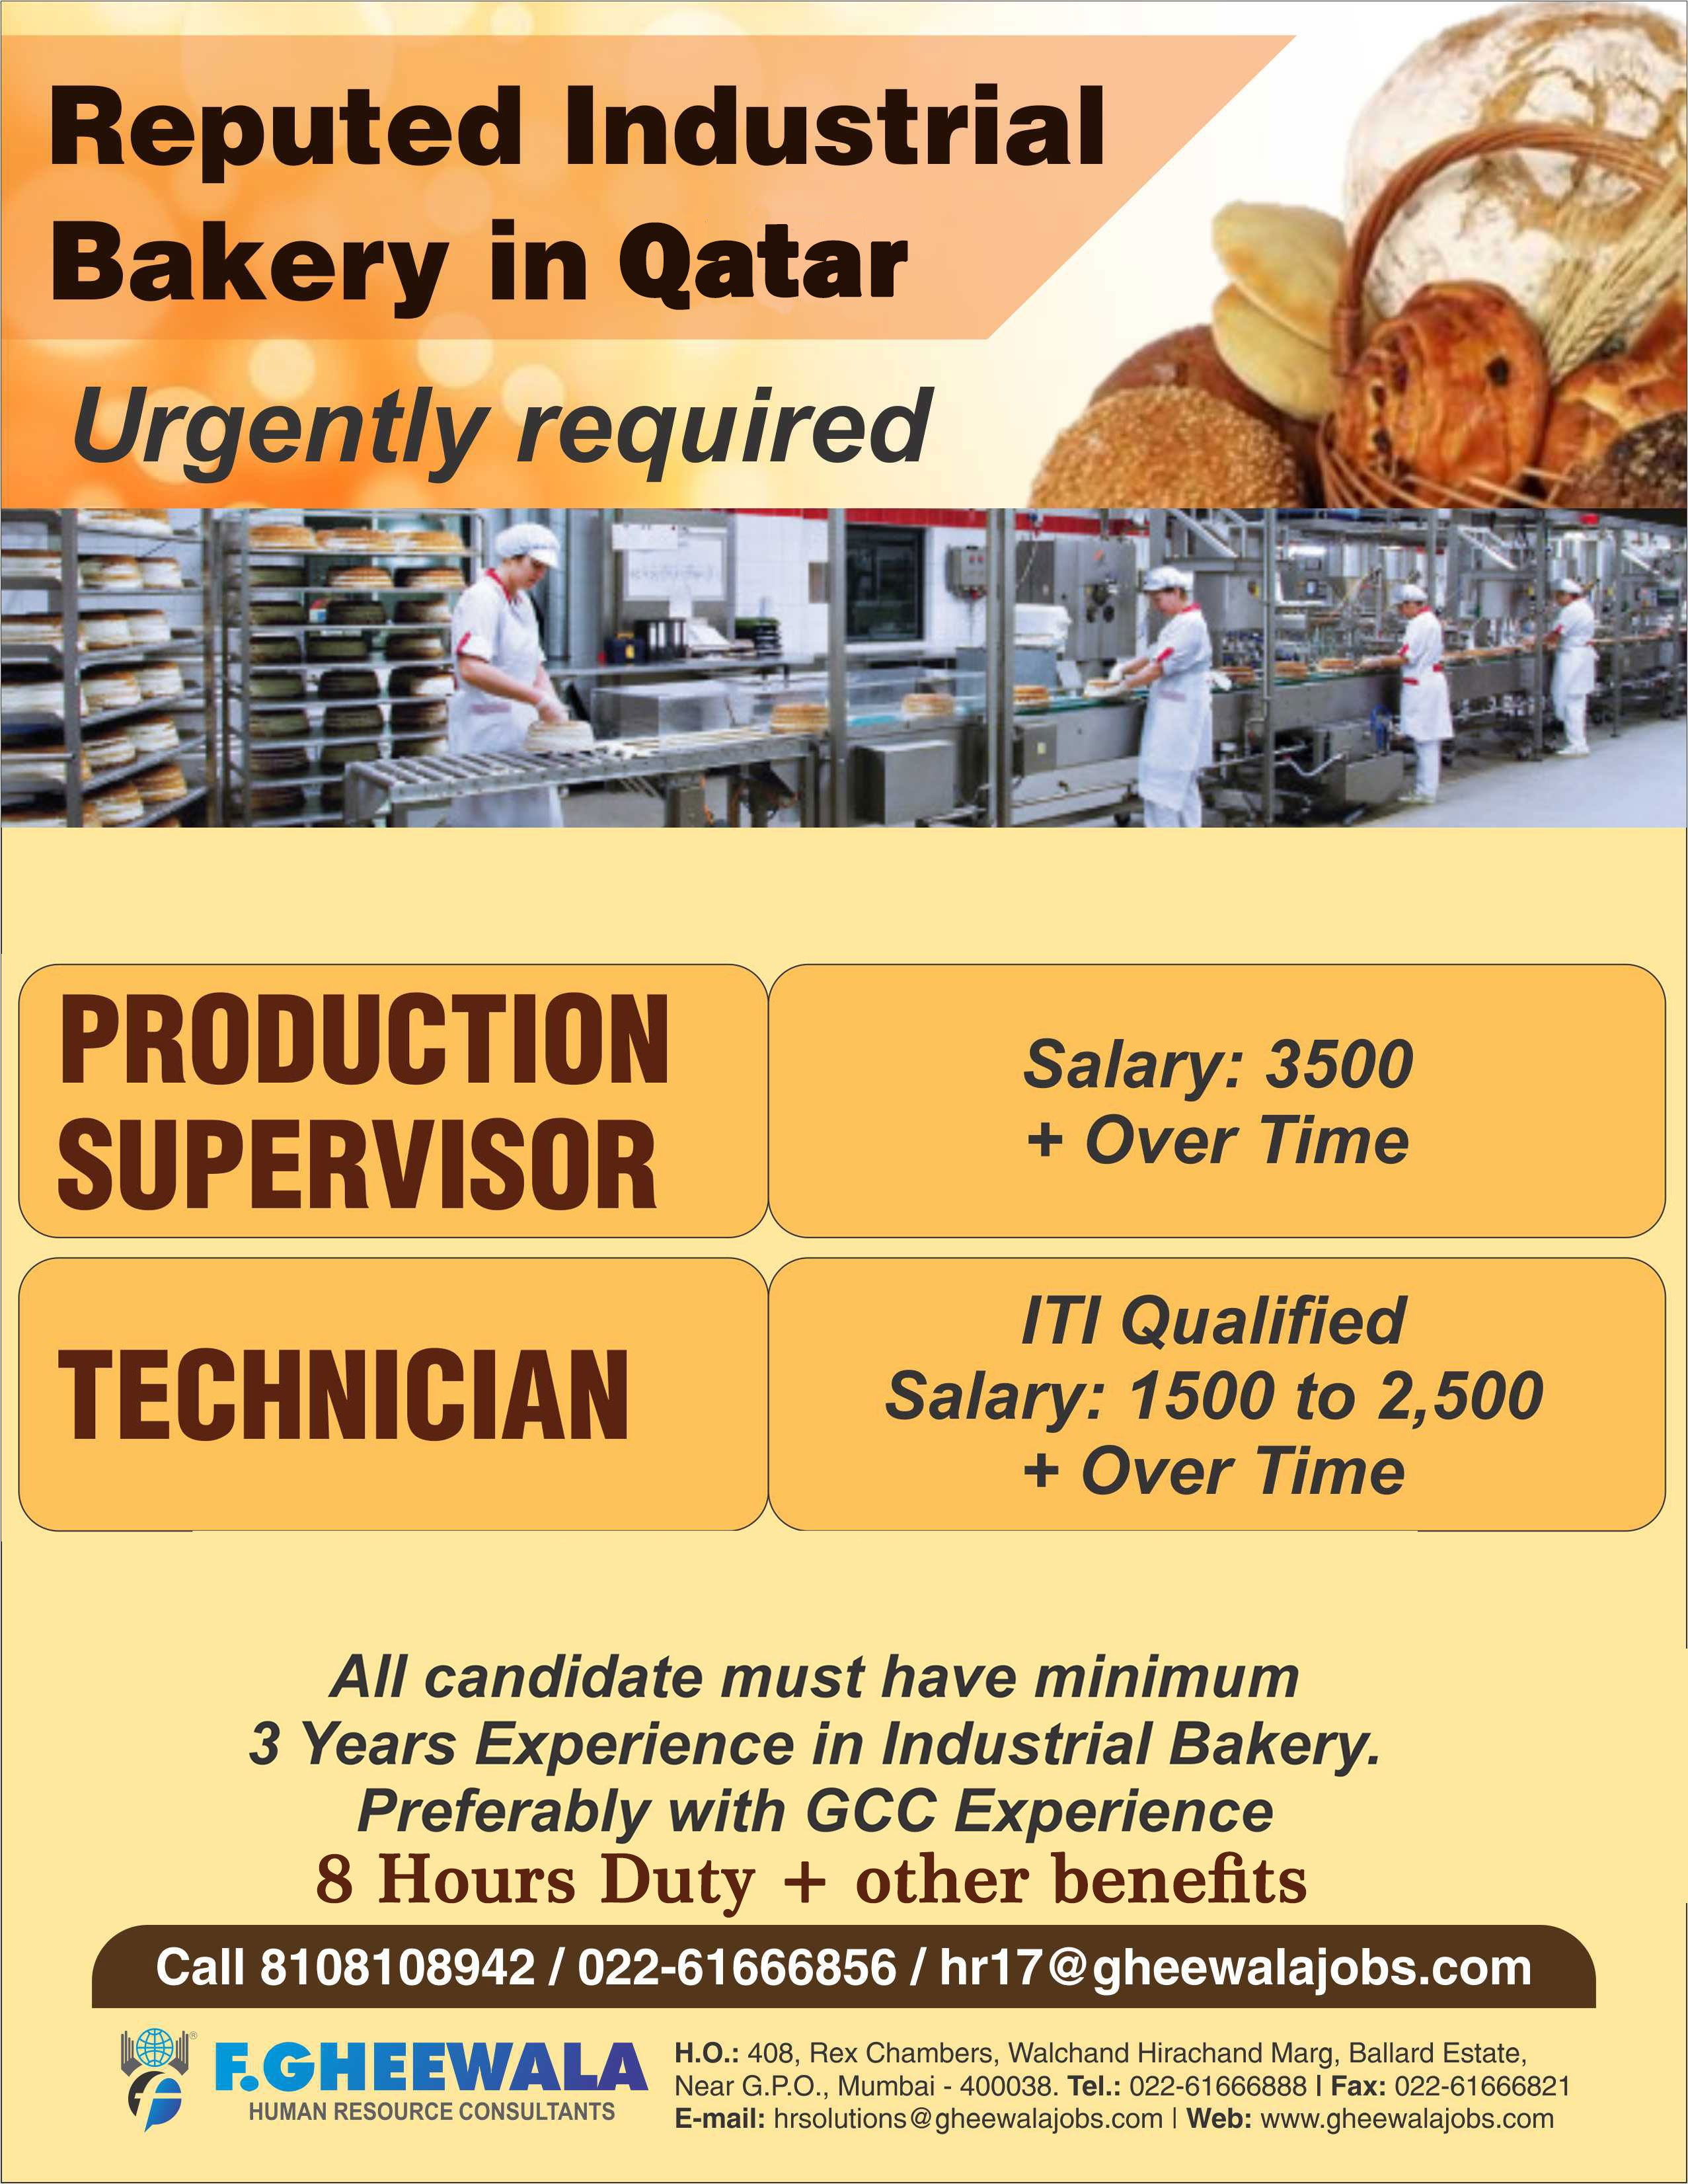 Urgently Required Production Supervisor & Technician for